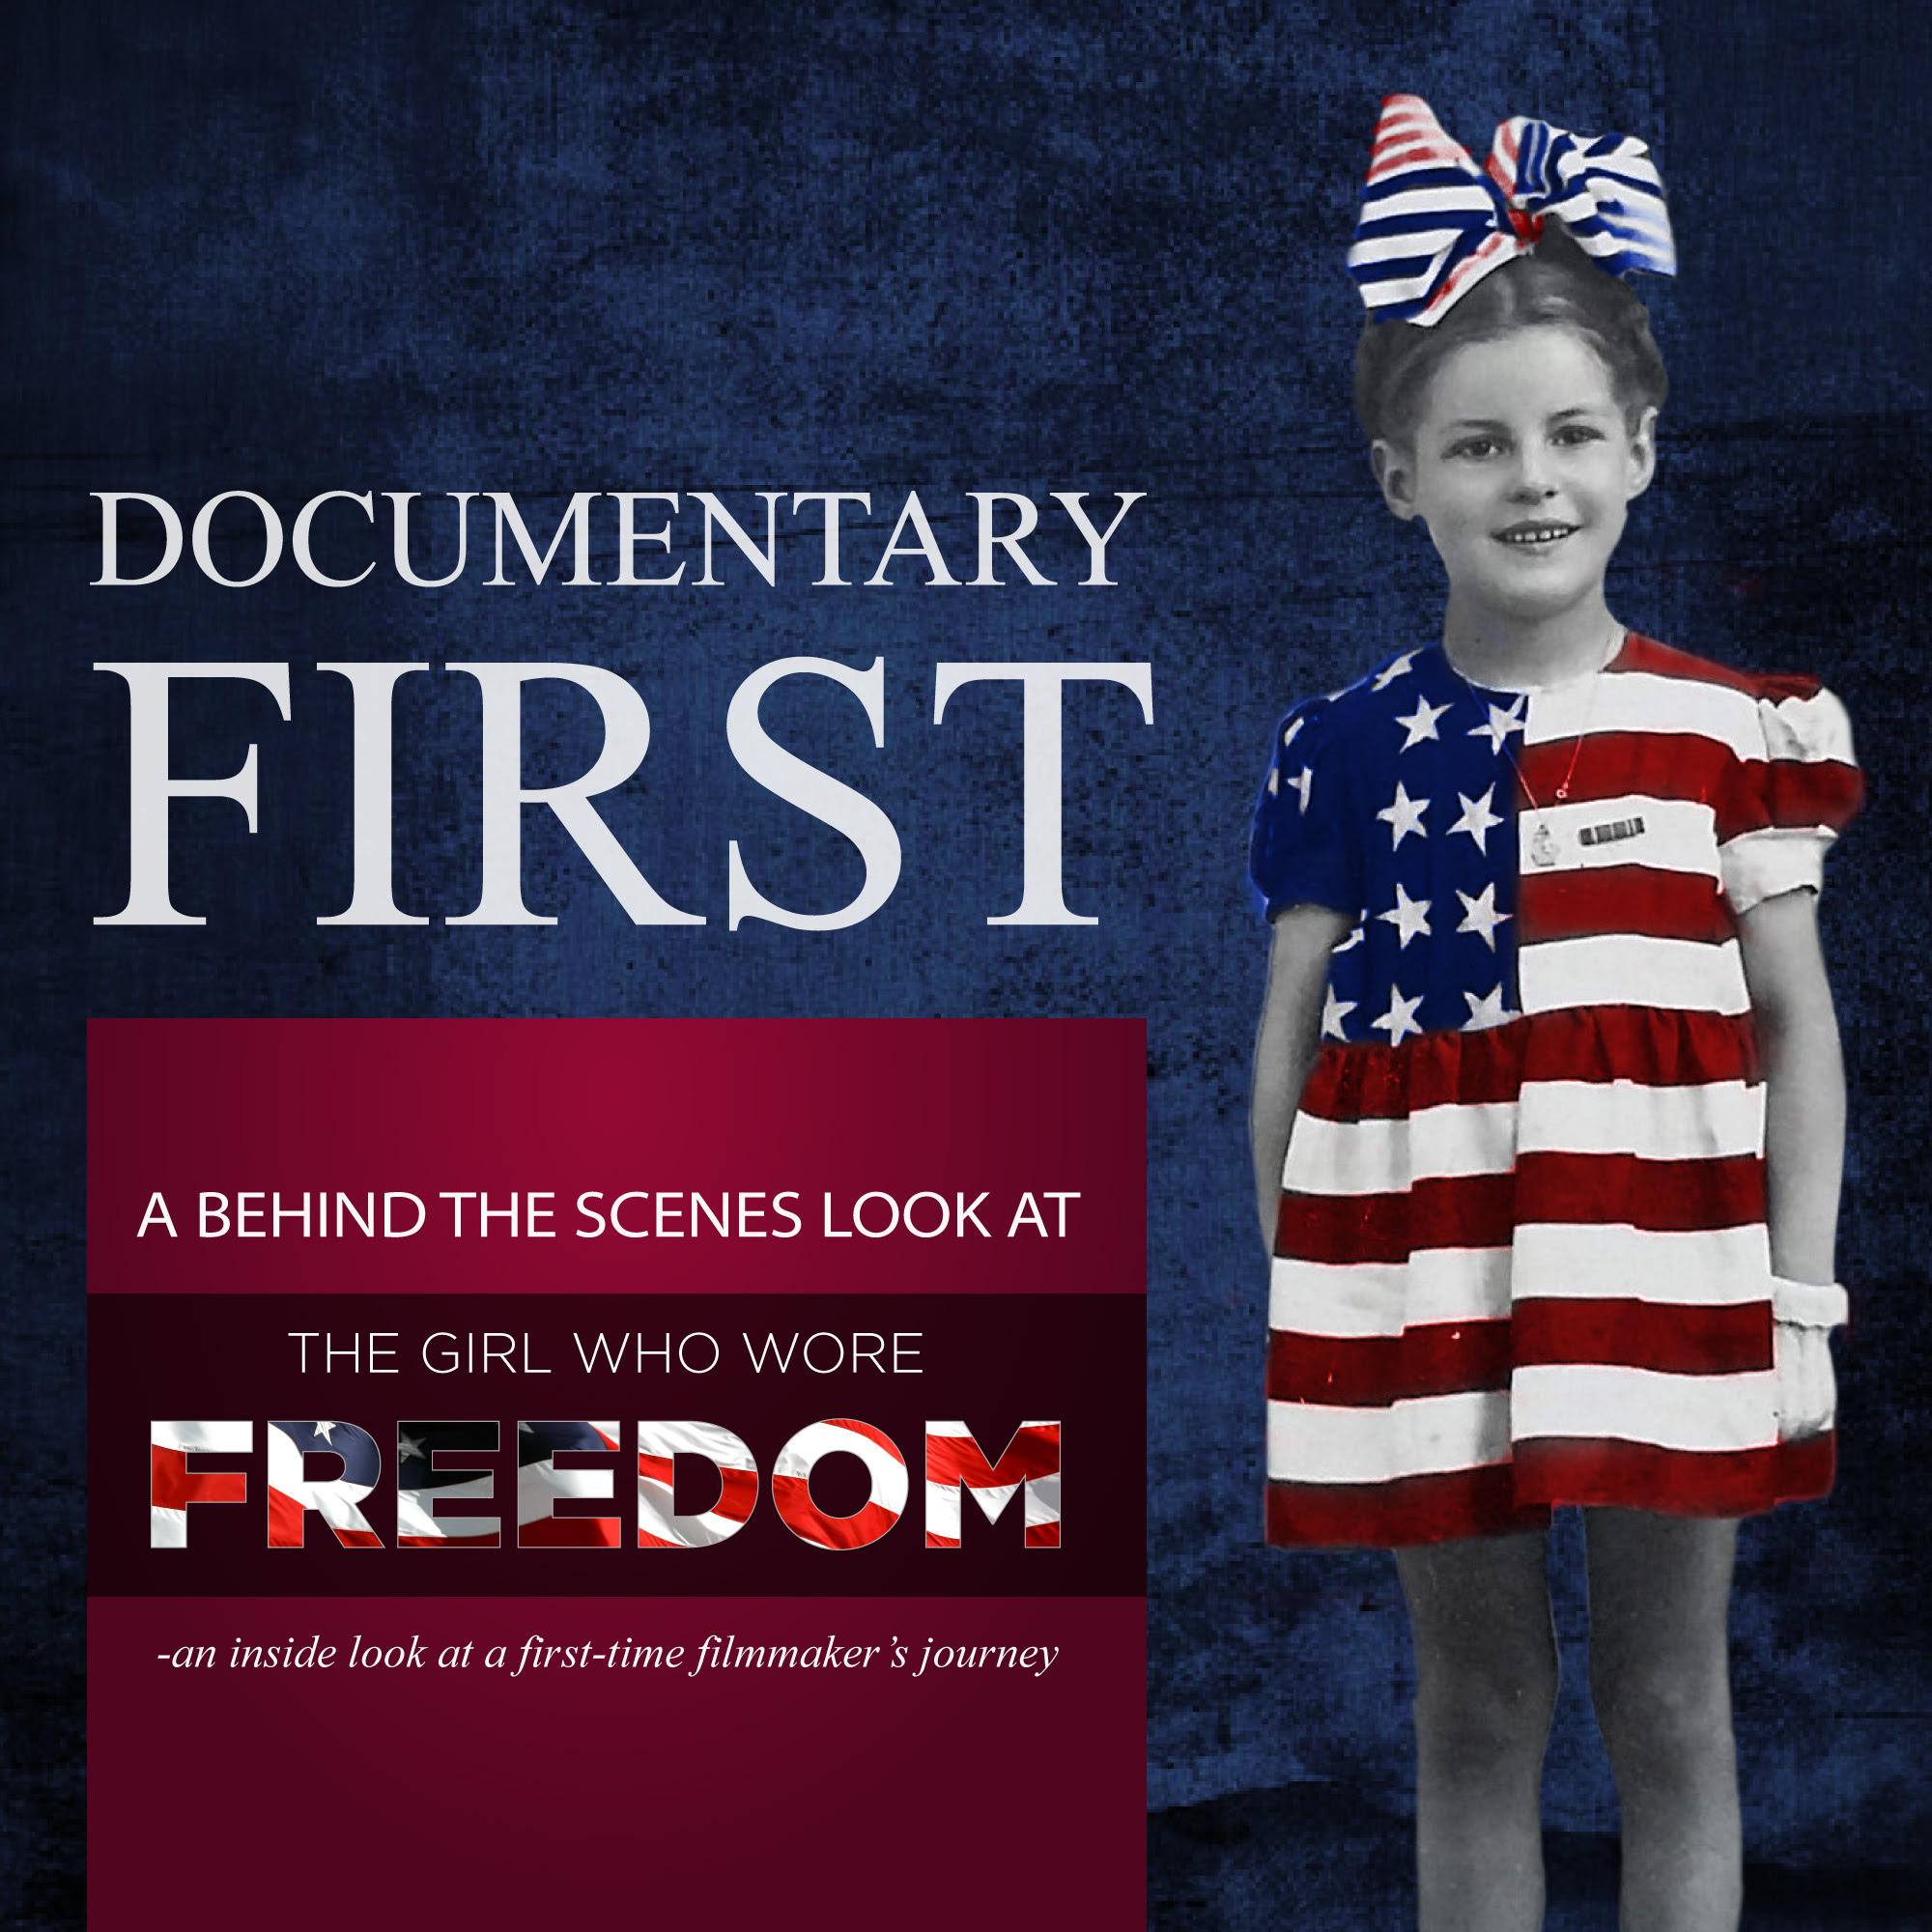 Documentary First show art